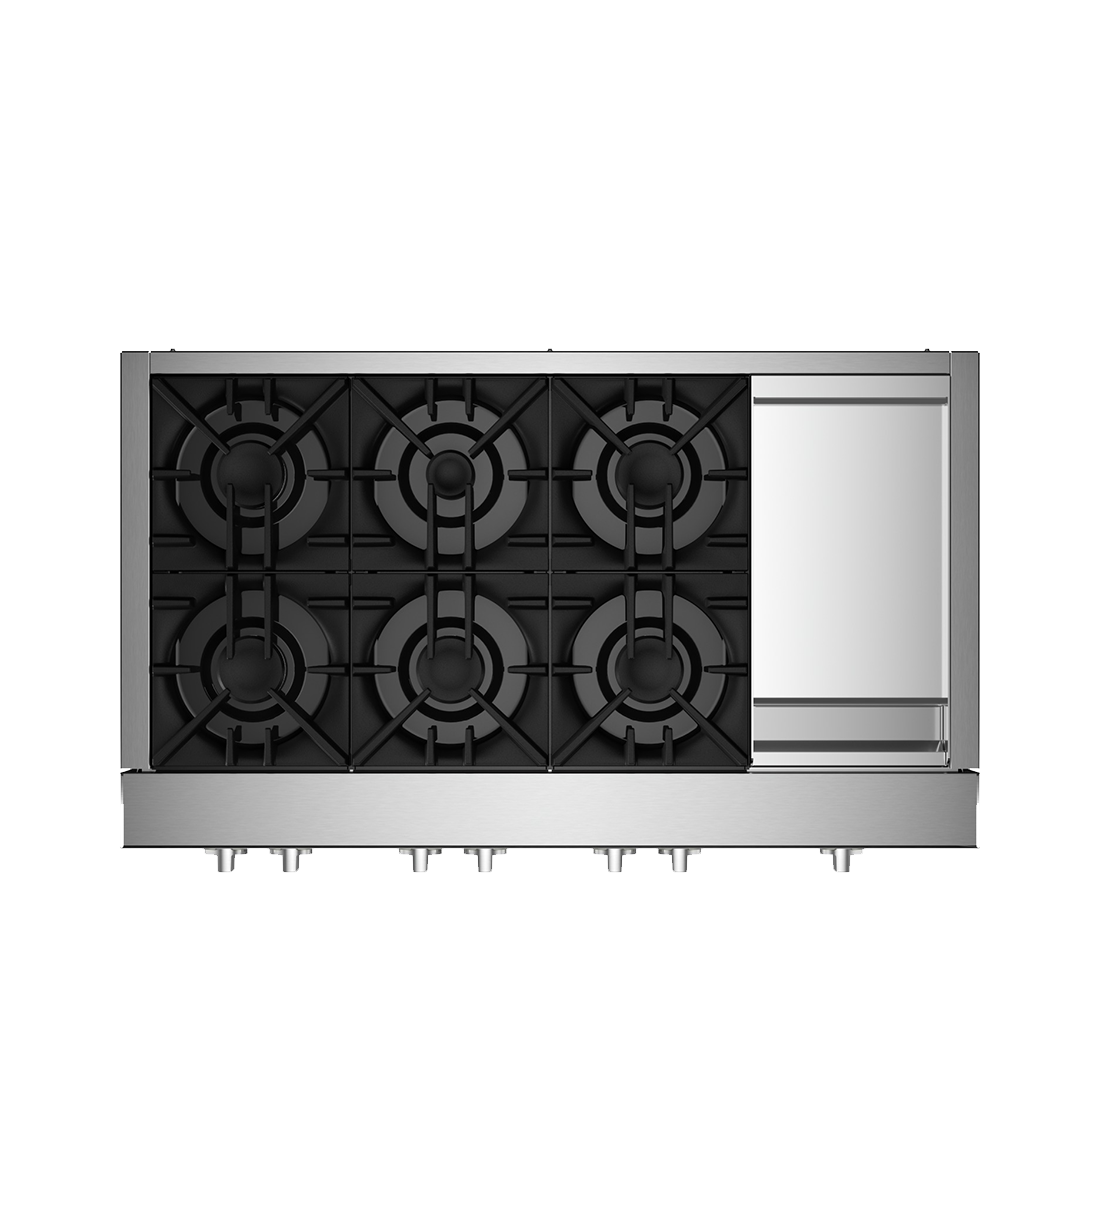 Jenn-Air Cooktop